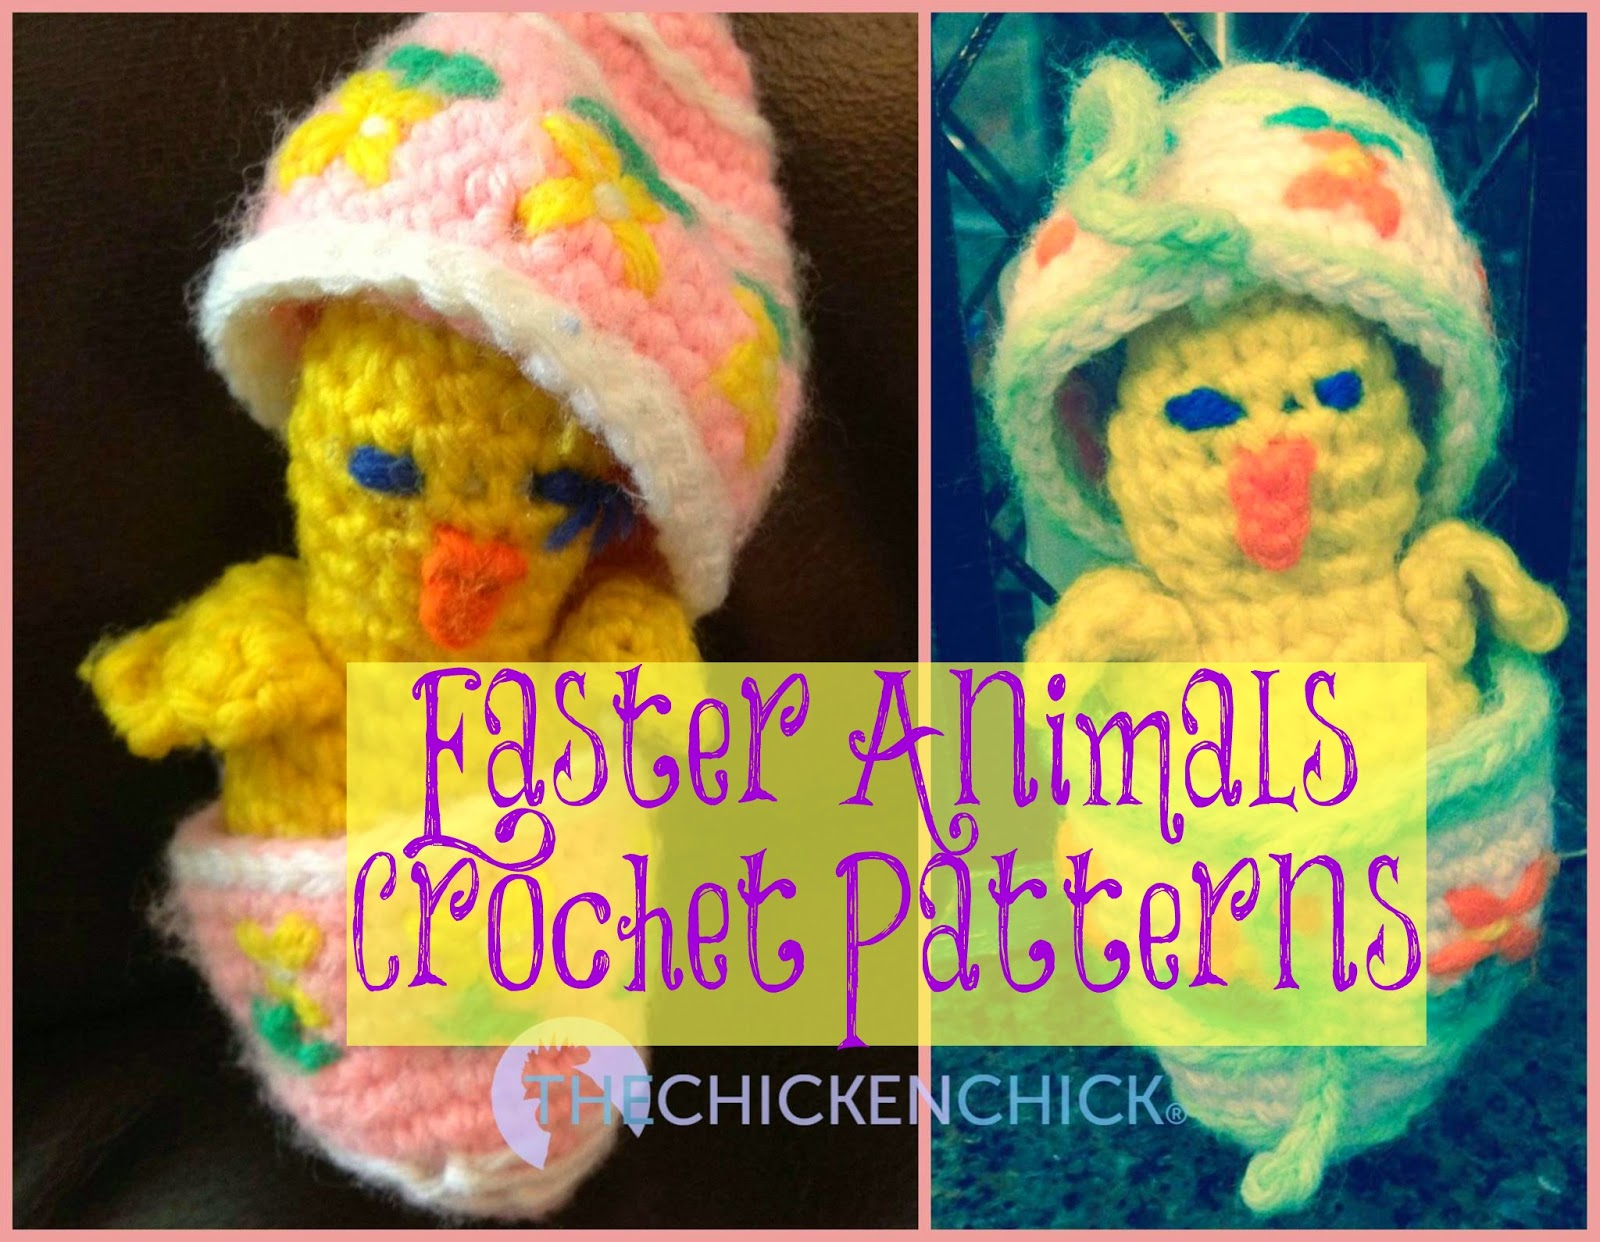 Chick in Egg Crochet Pattern from Woman\'s Day March 27, 1978   The ...